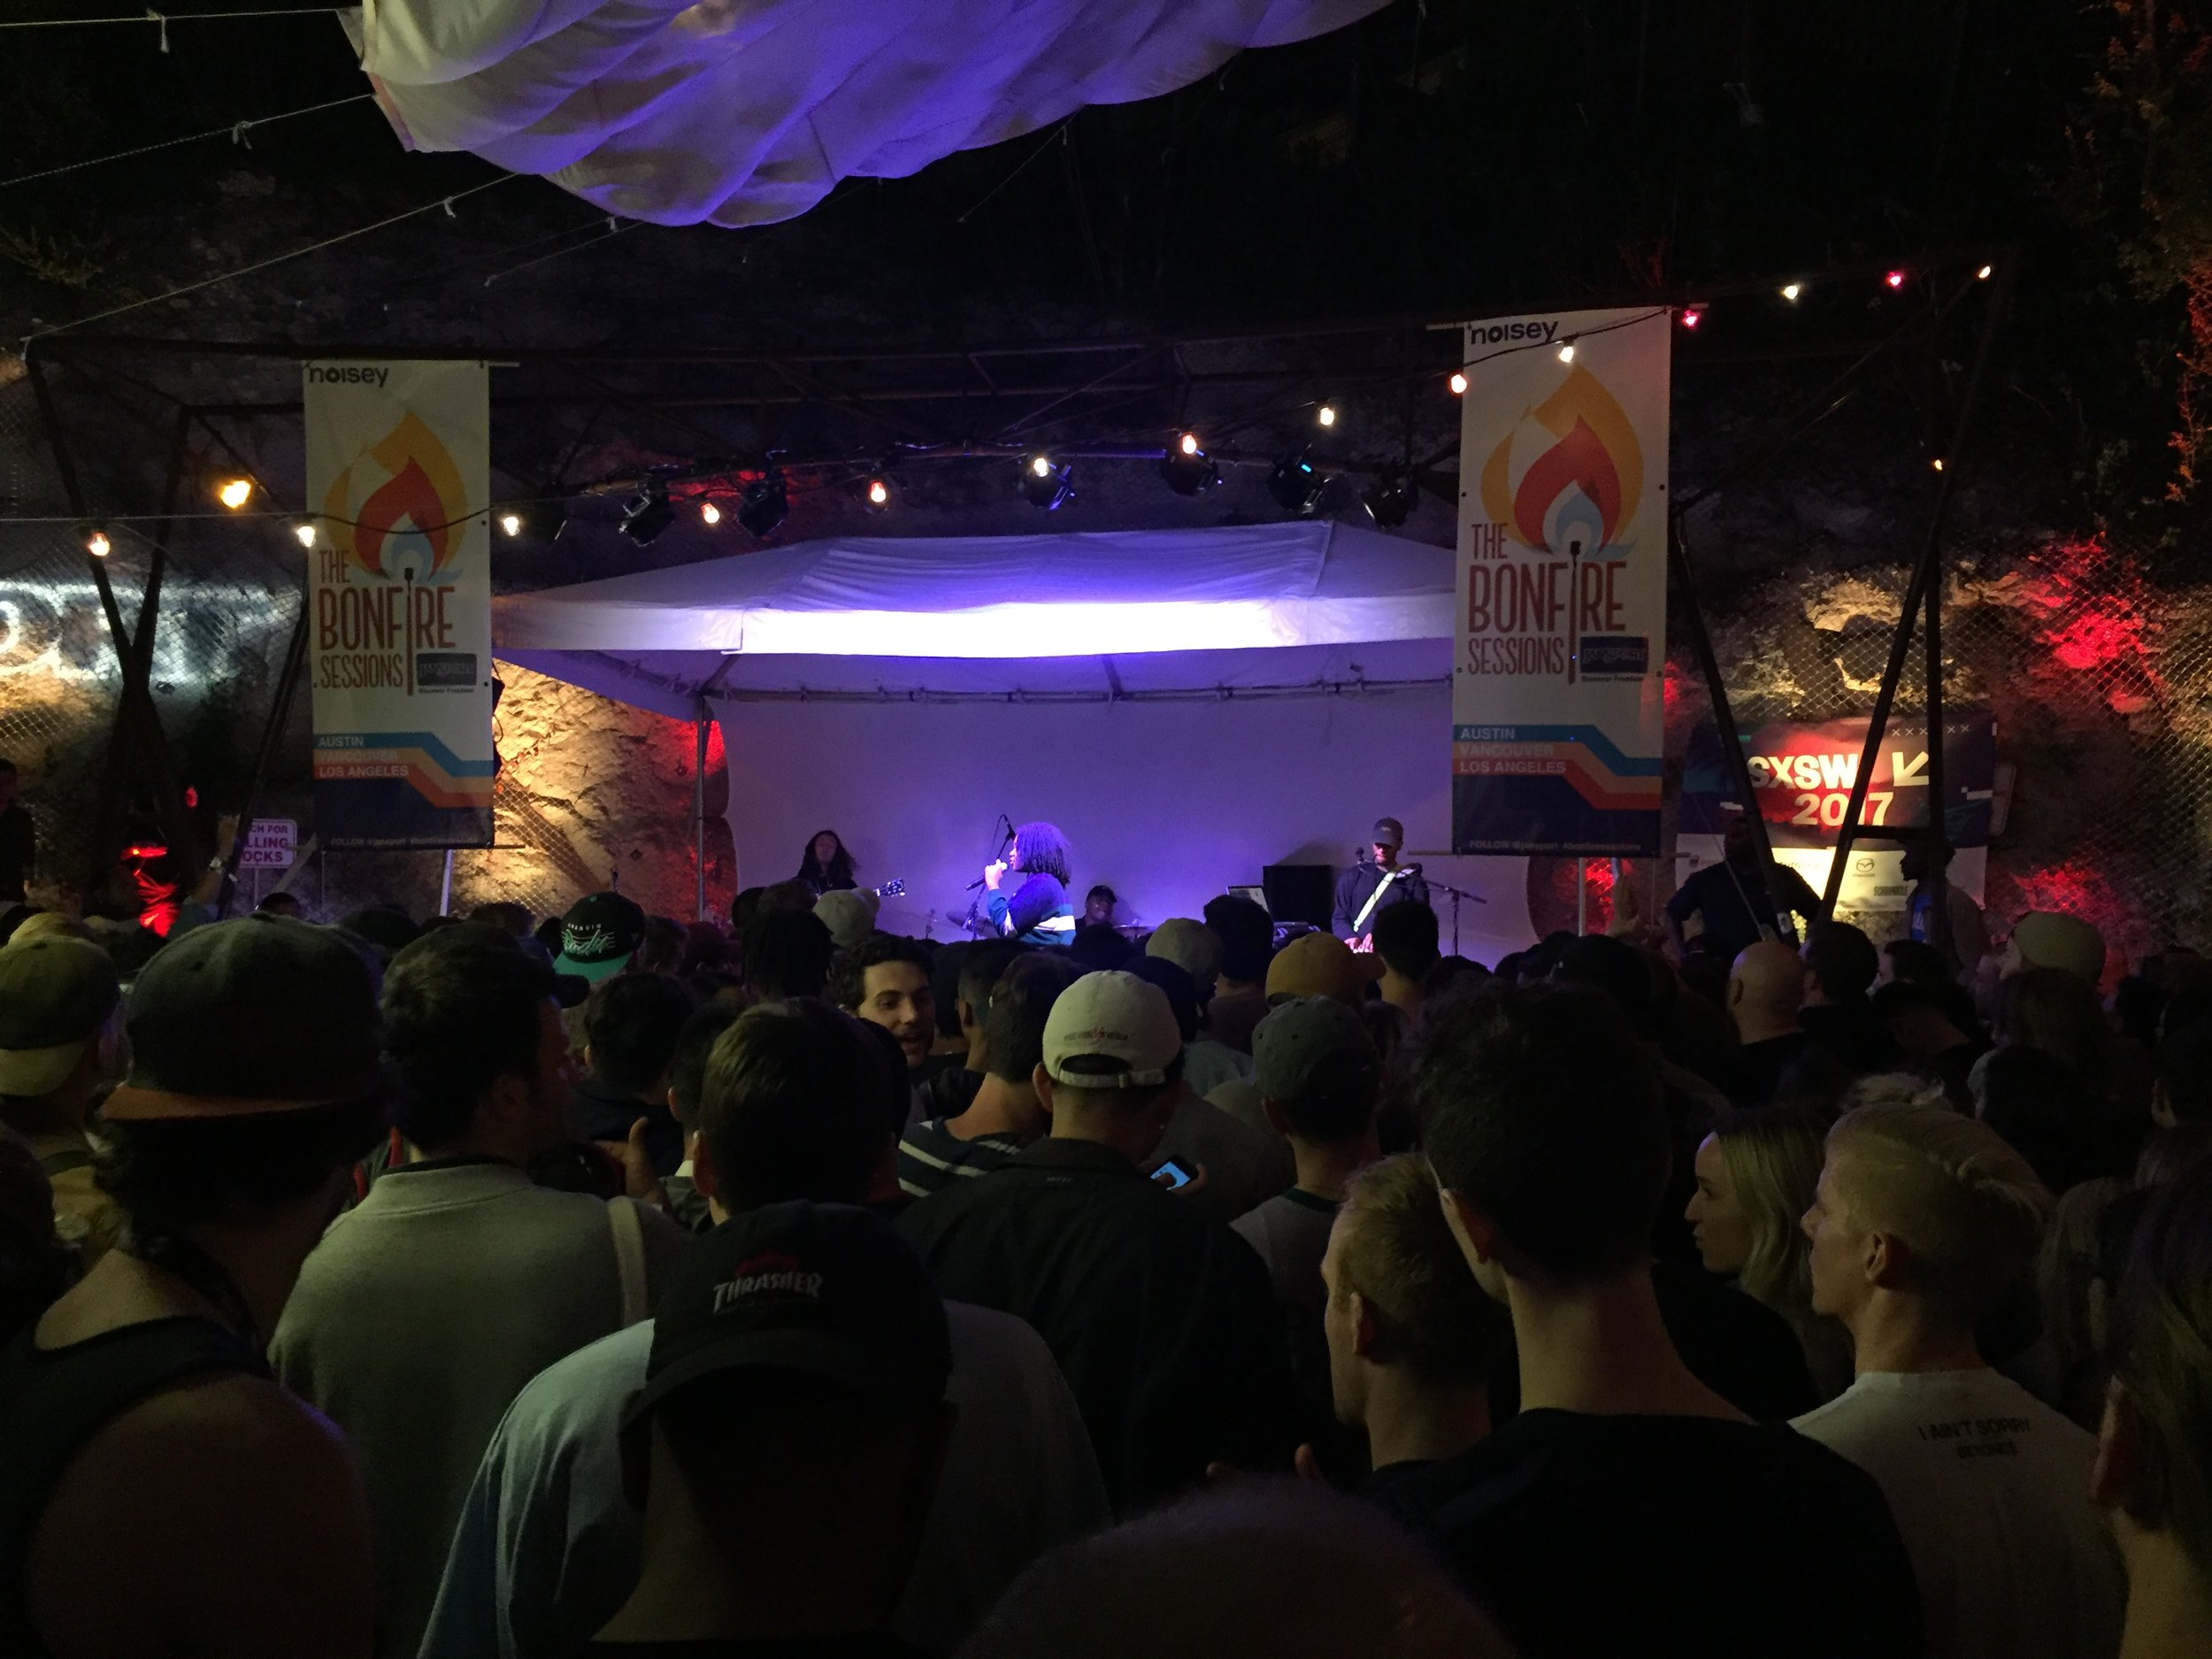 NoName killing it at SXSW!